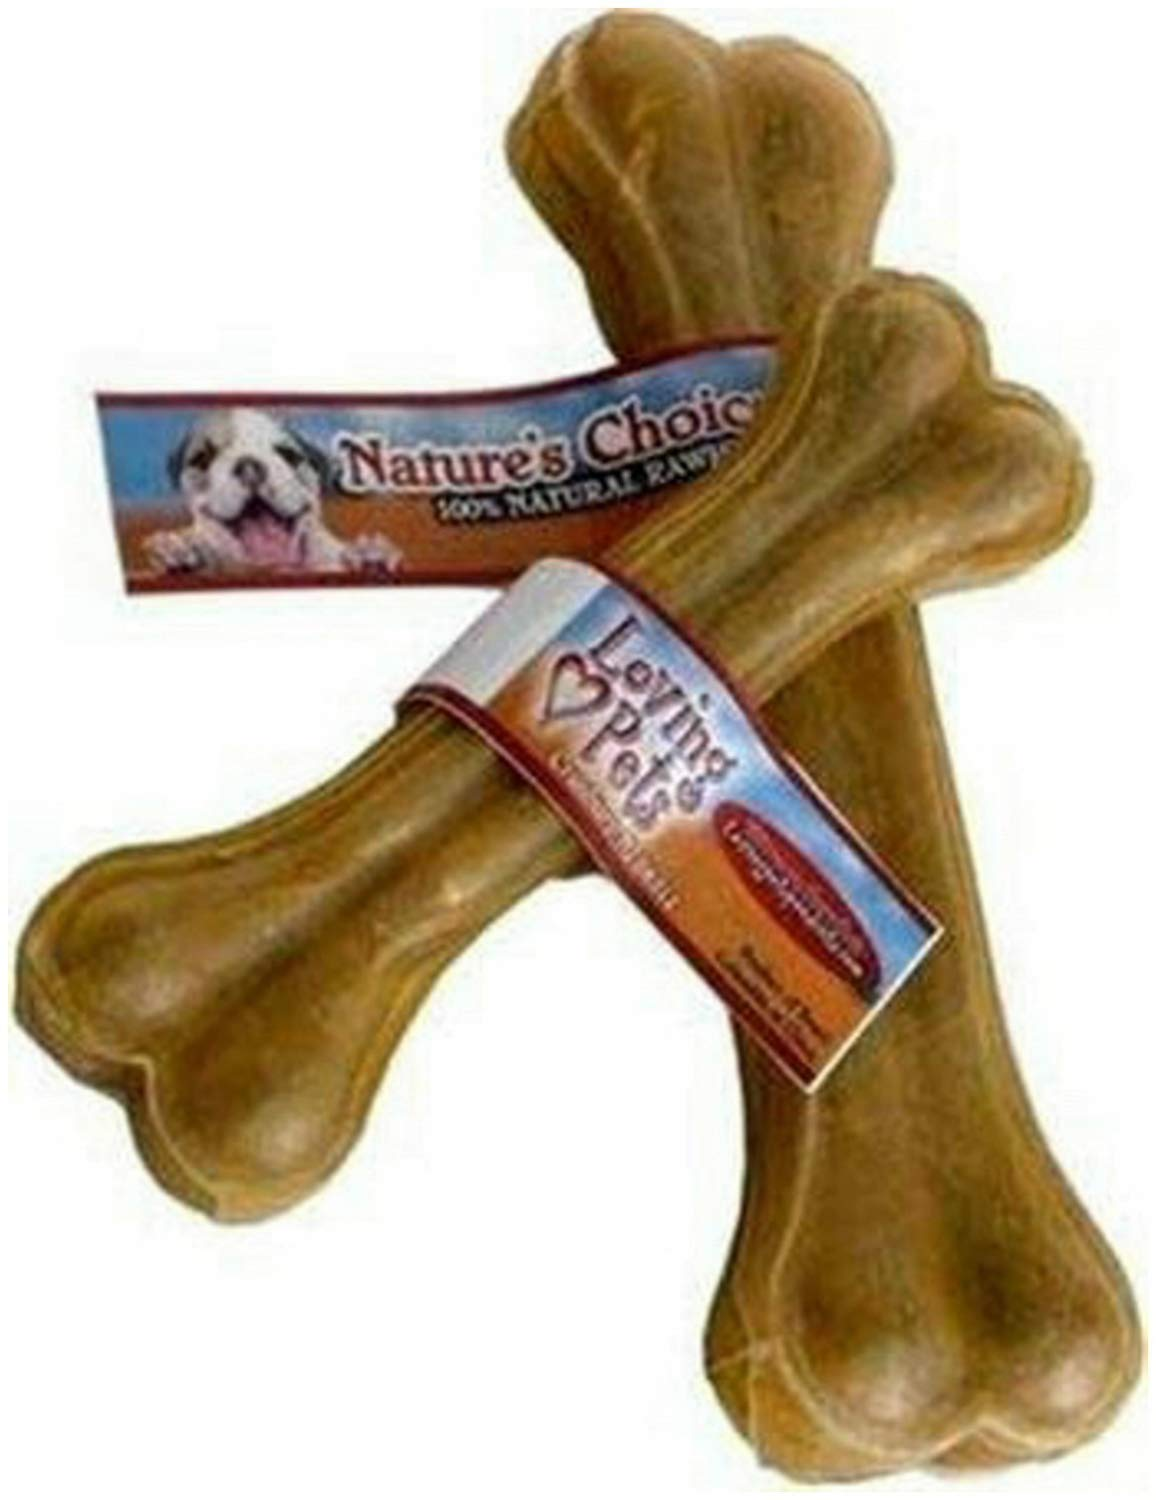 Loving Pets Nature's Choice Rawhide Pressed Bone Dog Chews, 12 Inch, 5 Pack by Loving Pets